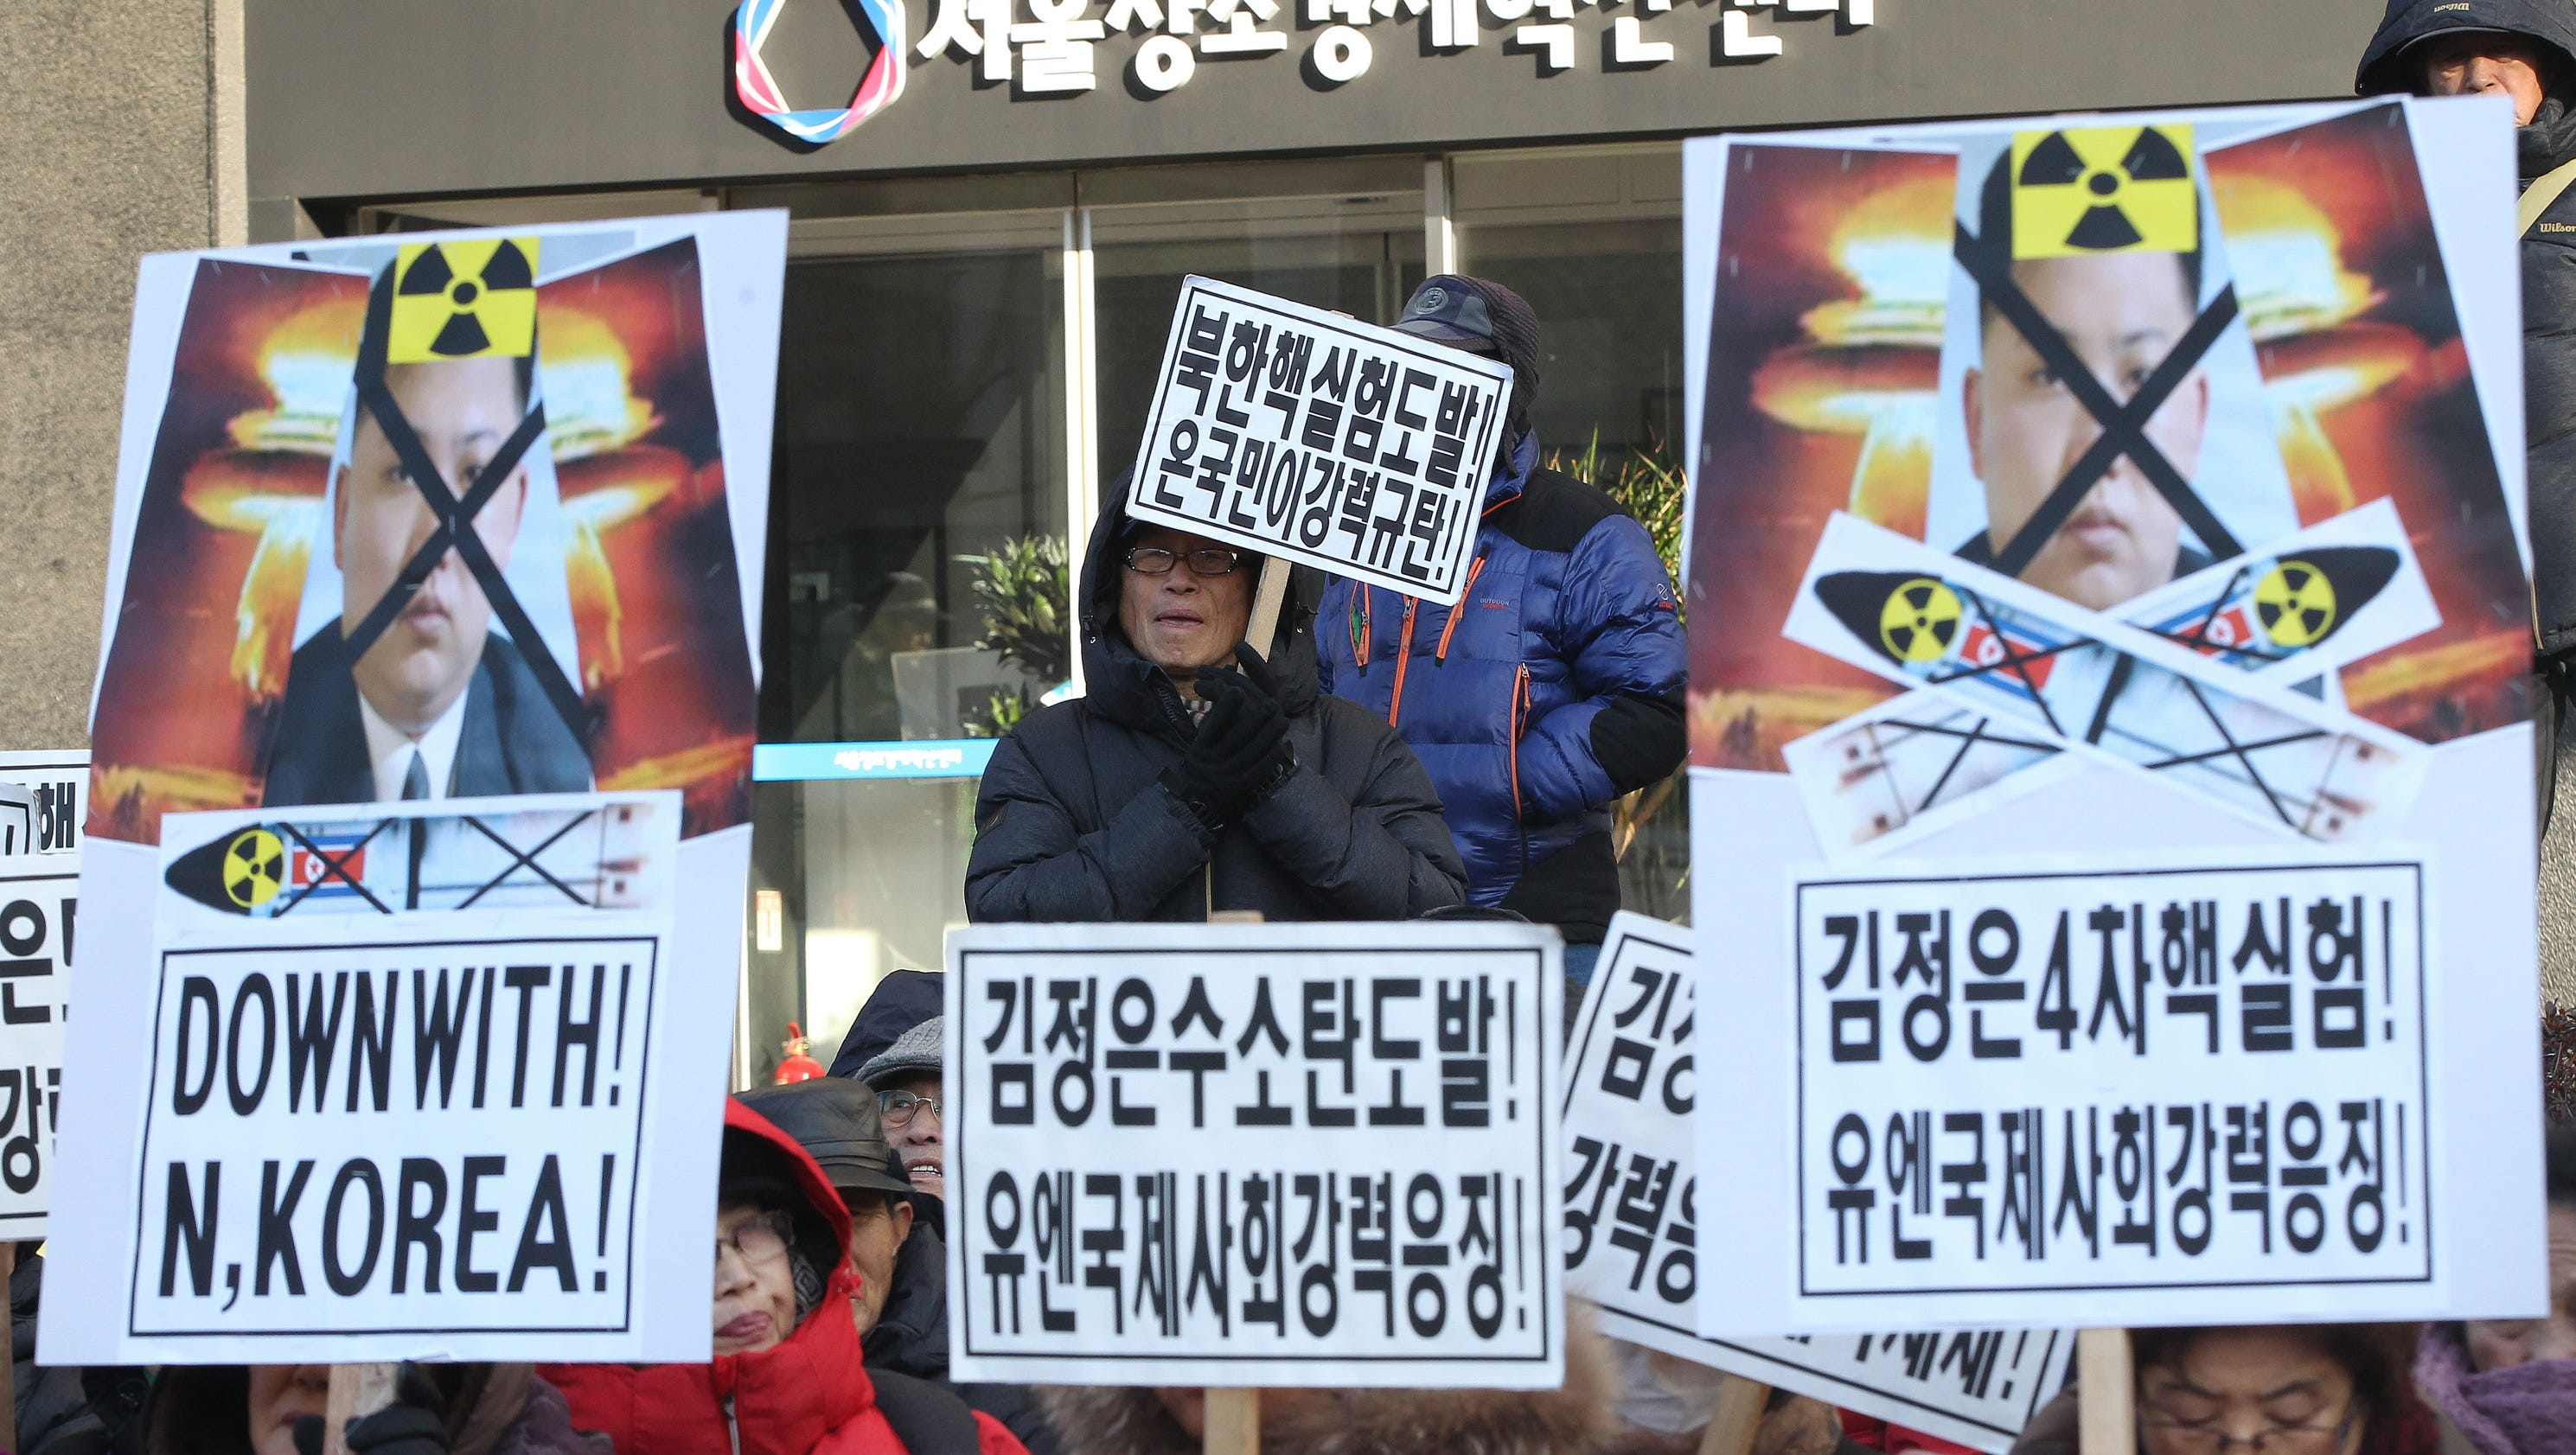 South Korea says it will resume anti-North broadcasts